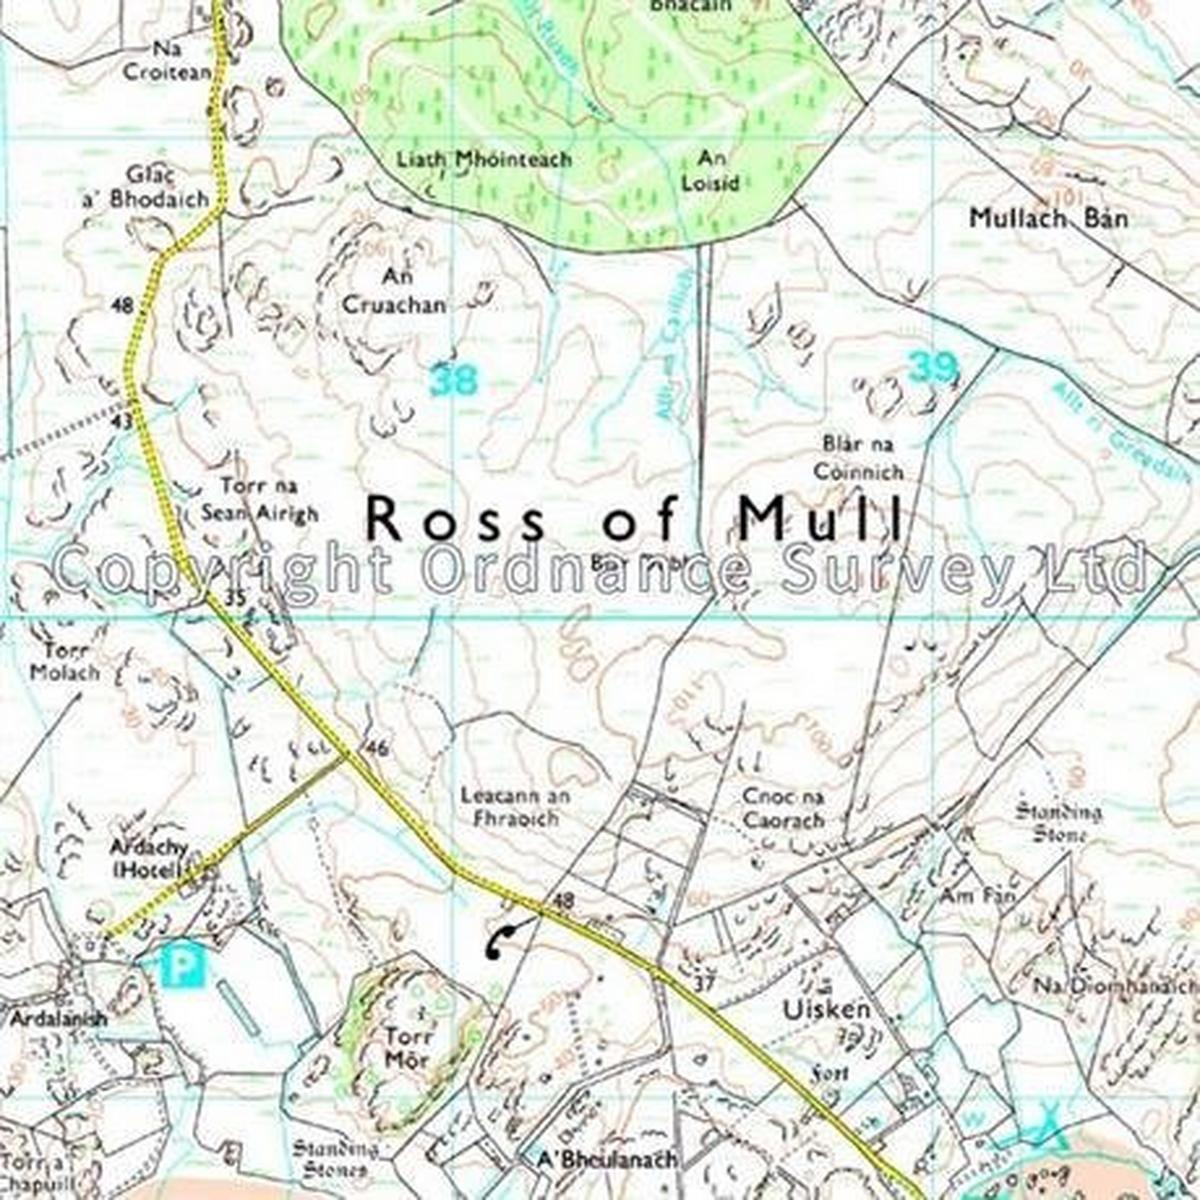 Ordnance Survey OS Explorer Map 373 Iona, Staffa and Ross of Mull